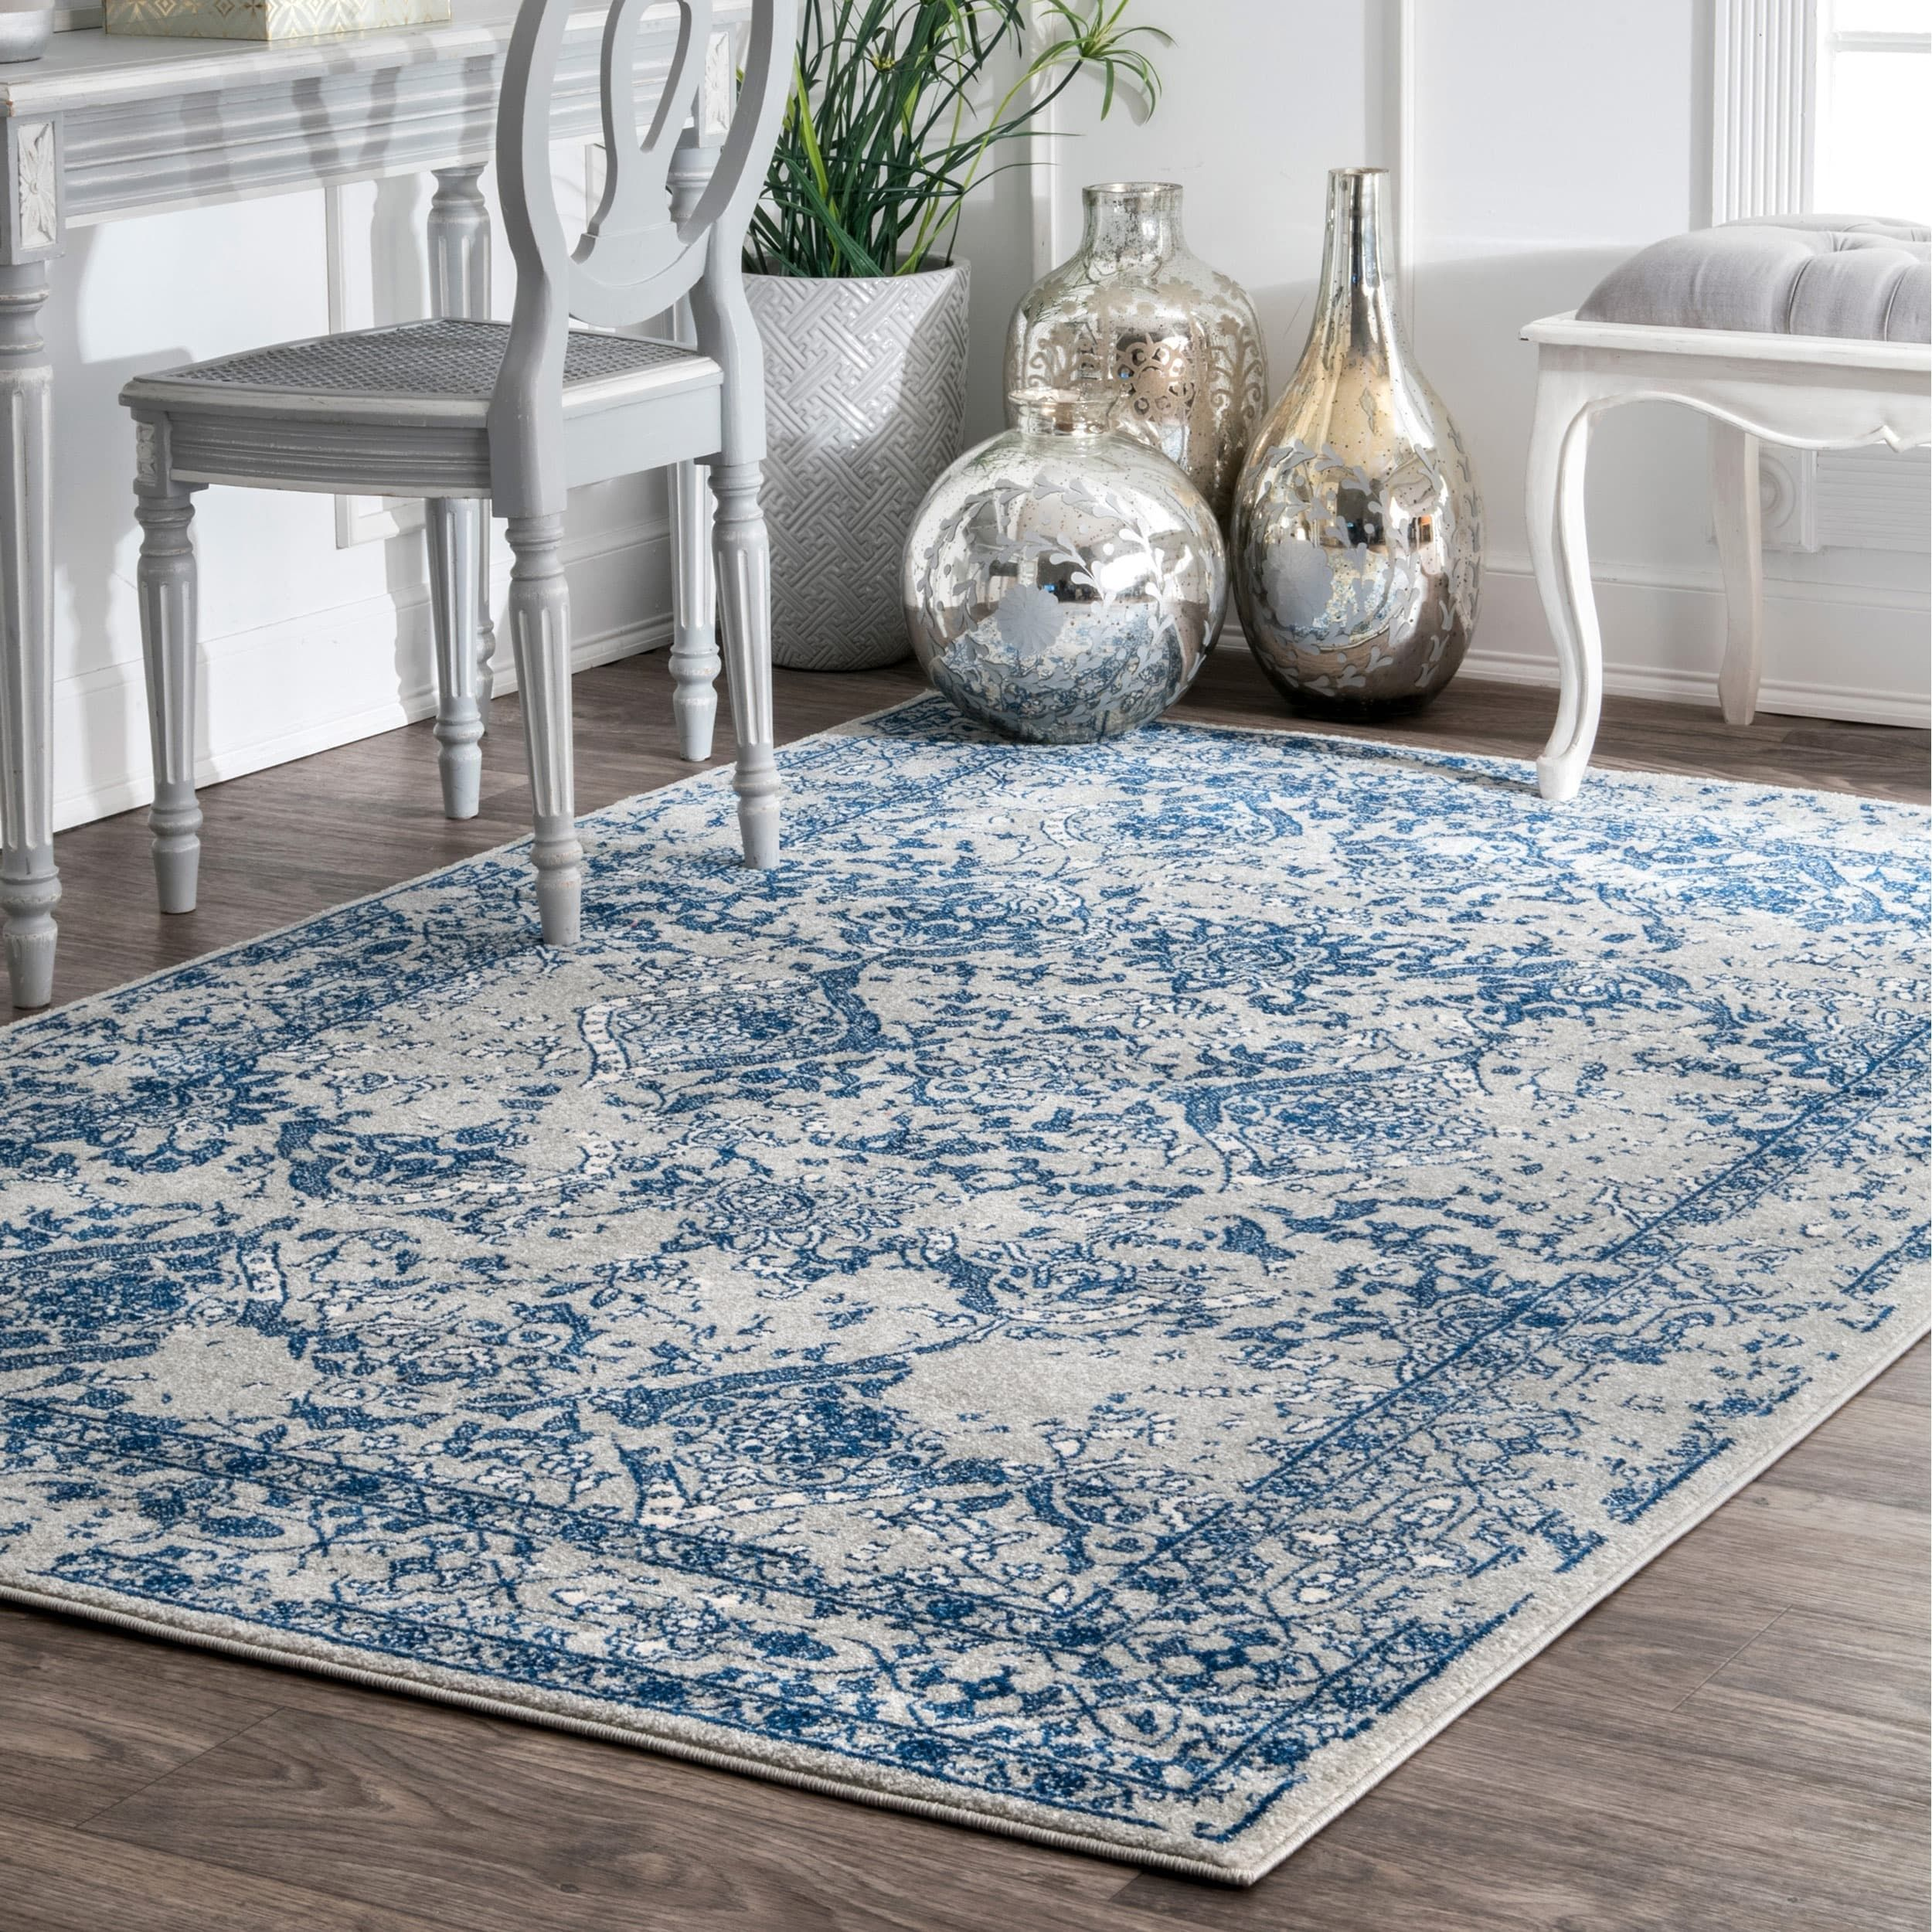 Nuloom Vintage Fl Ornament Light Blue Rug 8 X 10 Free Shipping Today 17681876